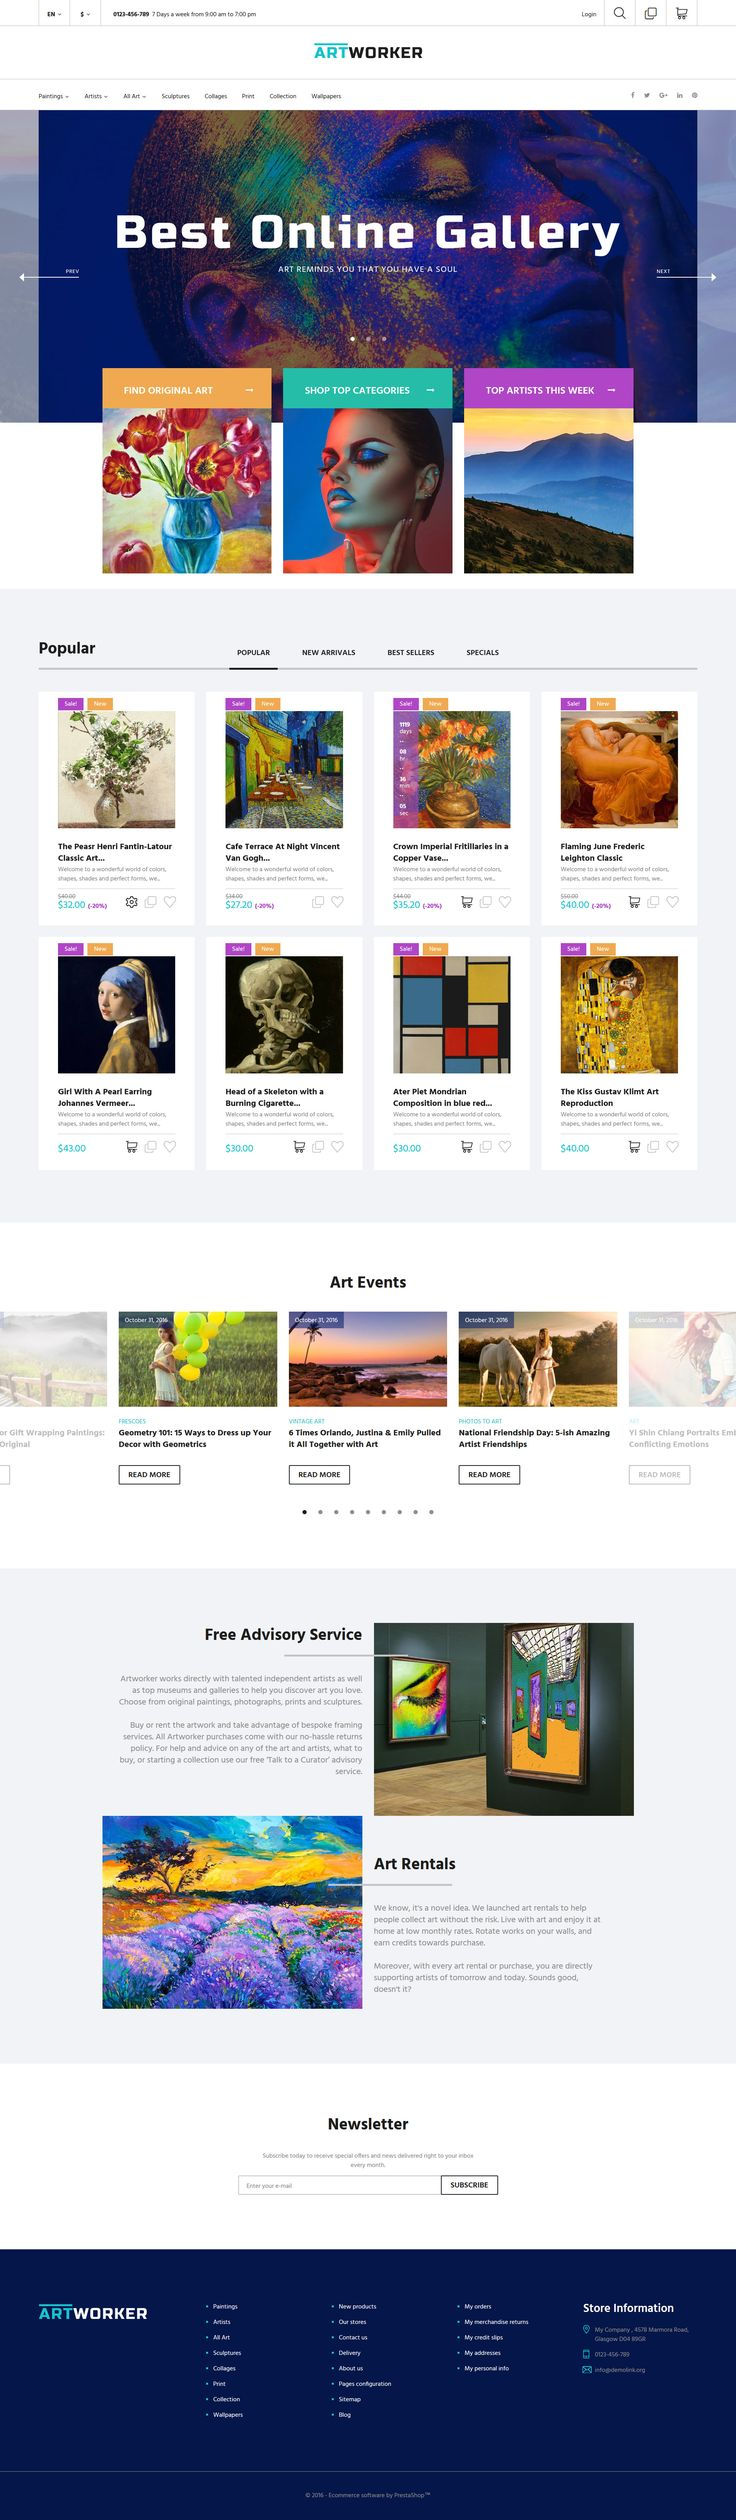 ArtWorker - Online Gallery PrestaShop Theme - https://www.templatemonster.com/prestashop-themes/artworker-online-gallery-prestashop-theme-62011.html